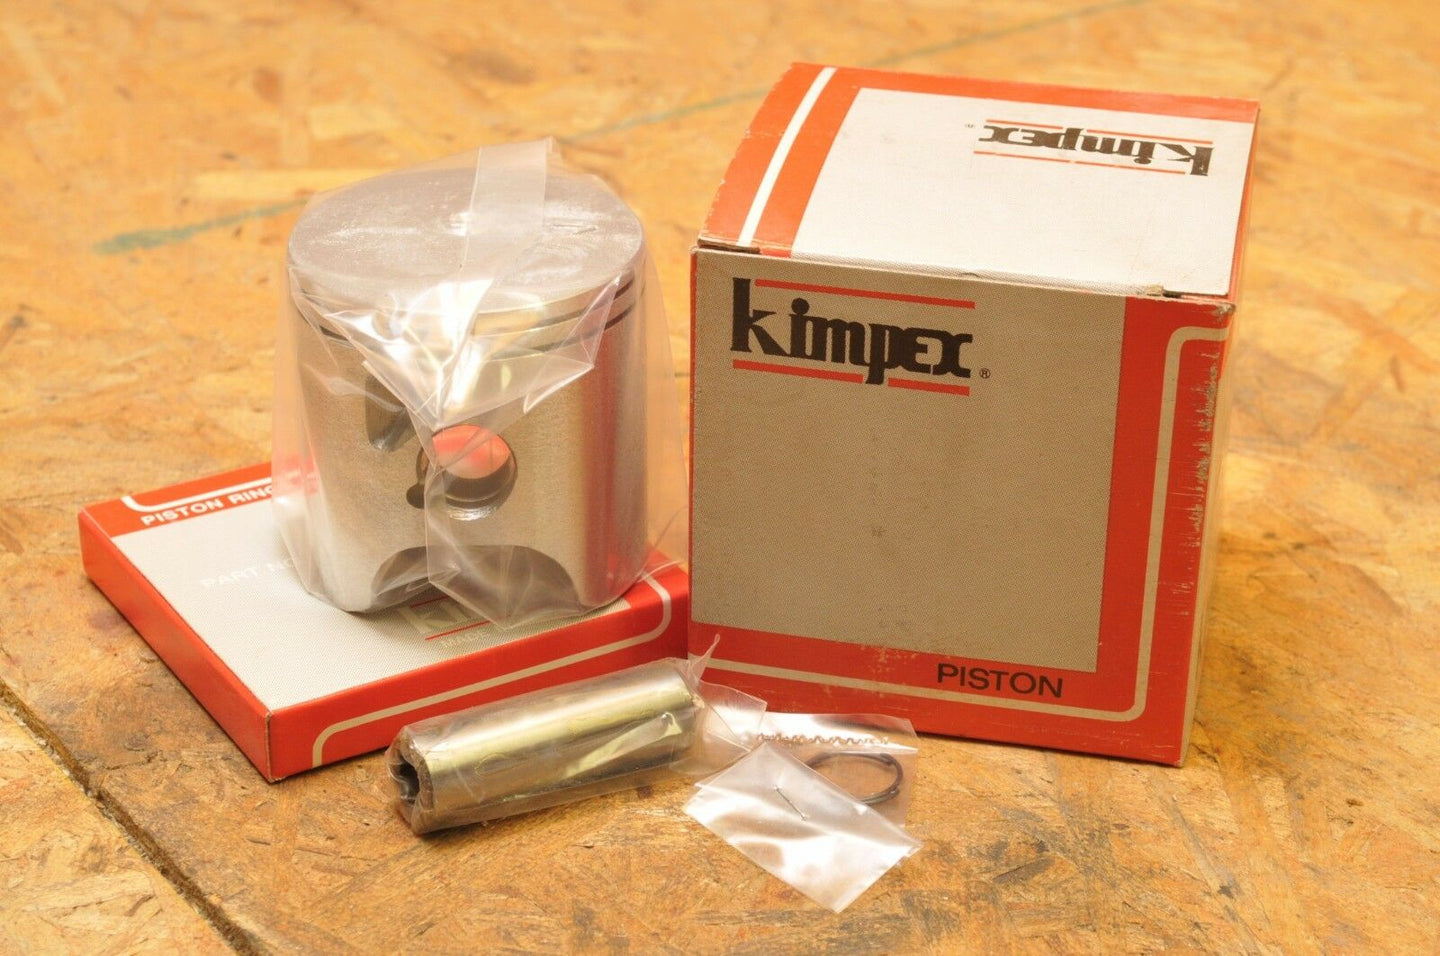 NEW NOS KIMPEX PISTON KIT 09-726 POLARIS INDY 500 CLASSIC,WIDETRAK 1997-2014